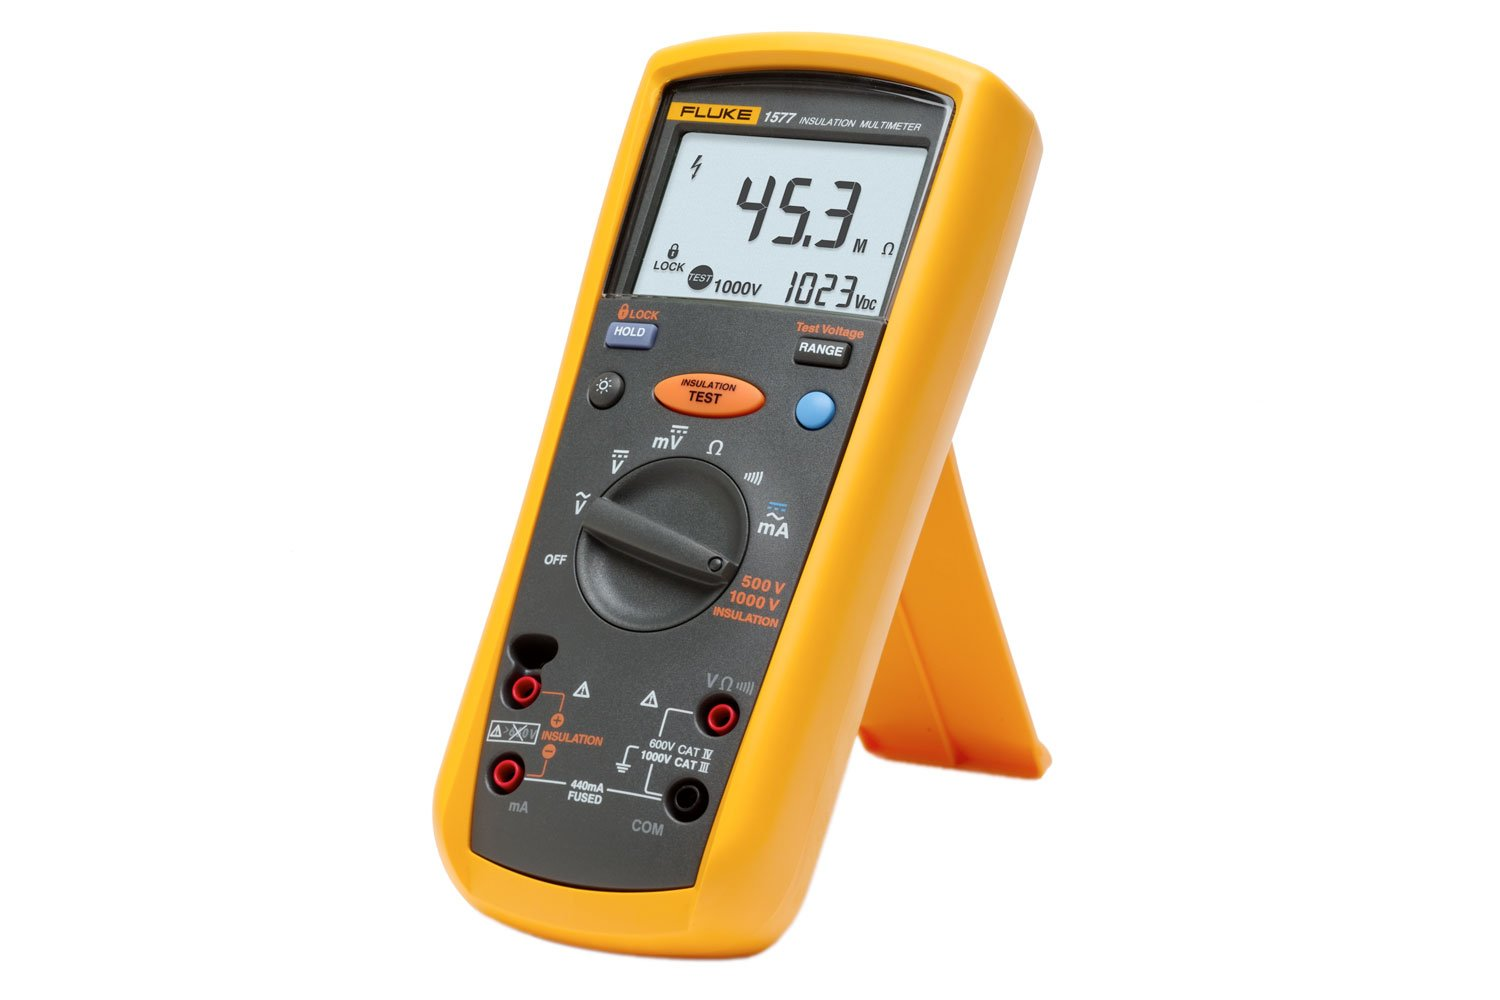 fluke 1577 insulation multimeter fluke rh fluke com Fluke 787 User Manual Fluke 87 Manual Users